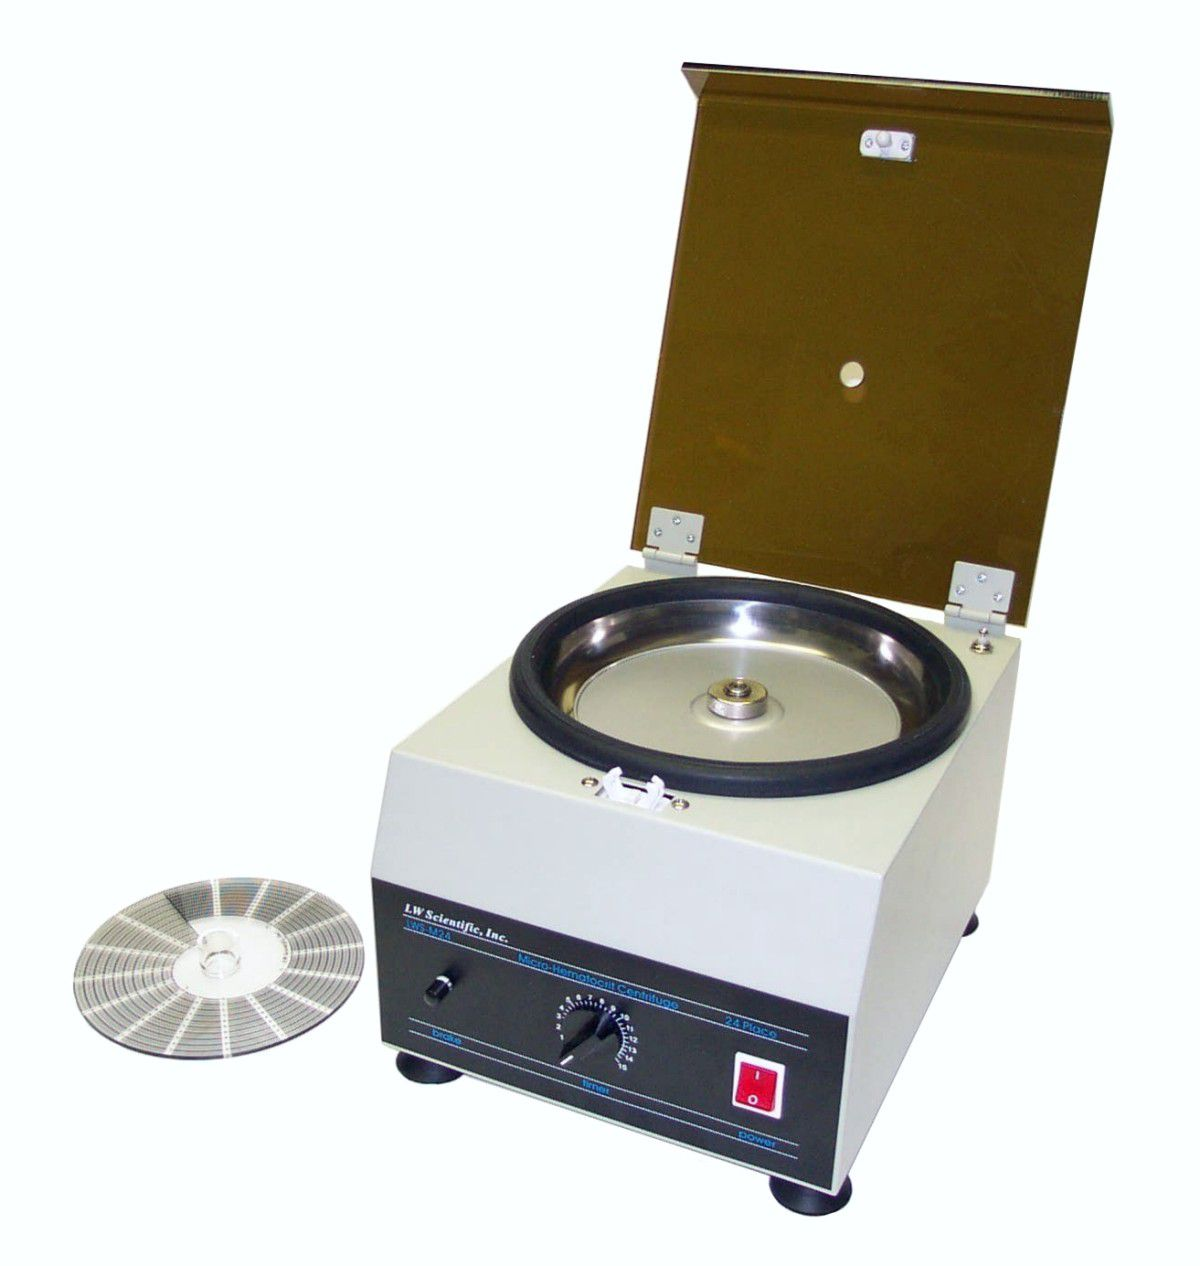 Lw Scientific 24-place Hematocrit Centrifuge - M24, Each - Model HEC-24HF-7501